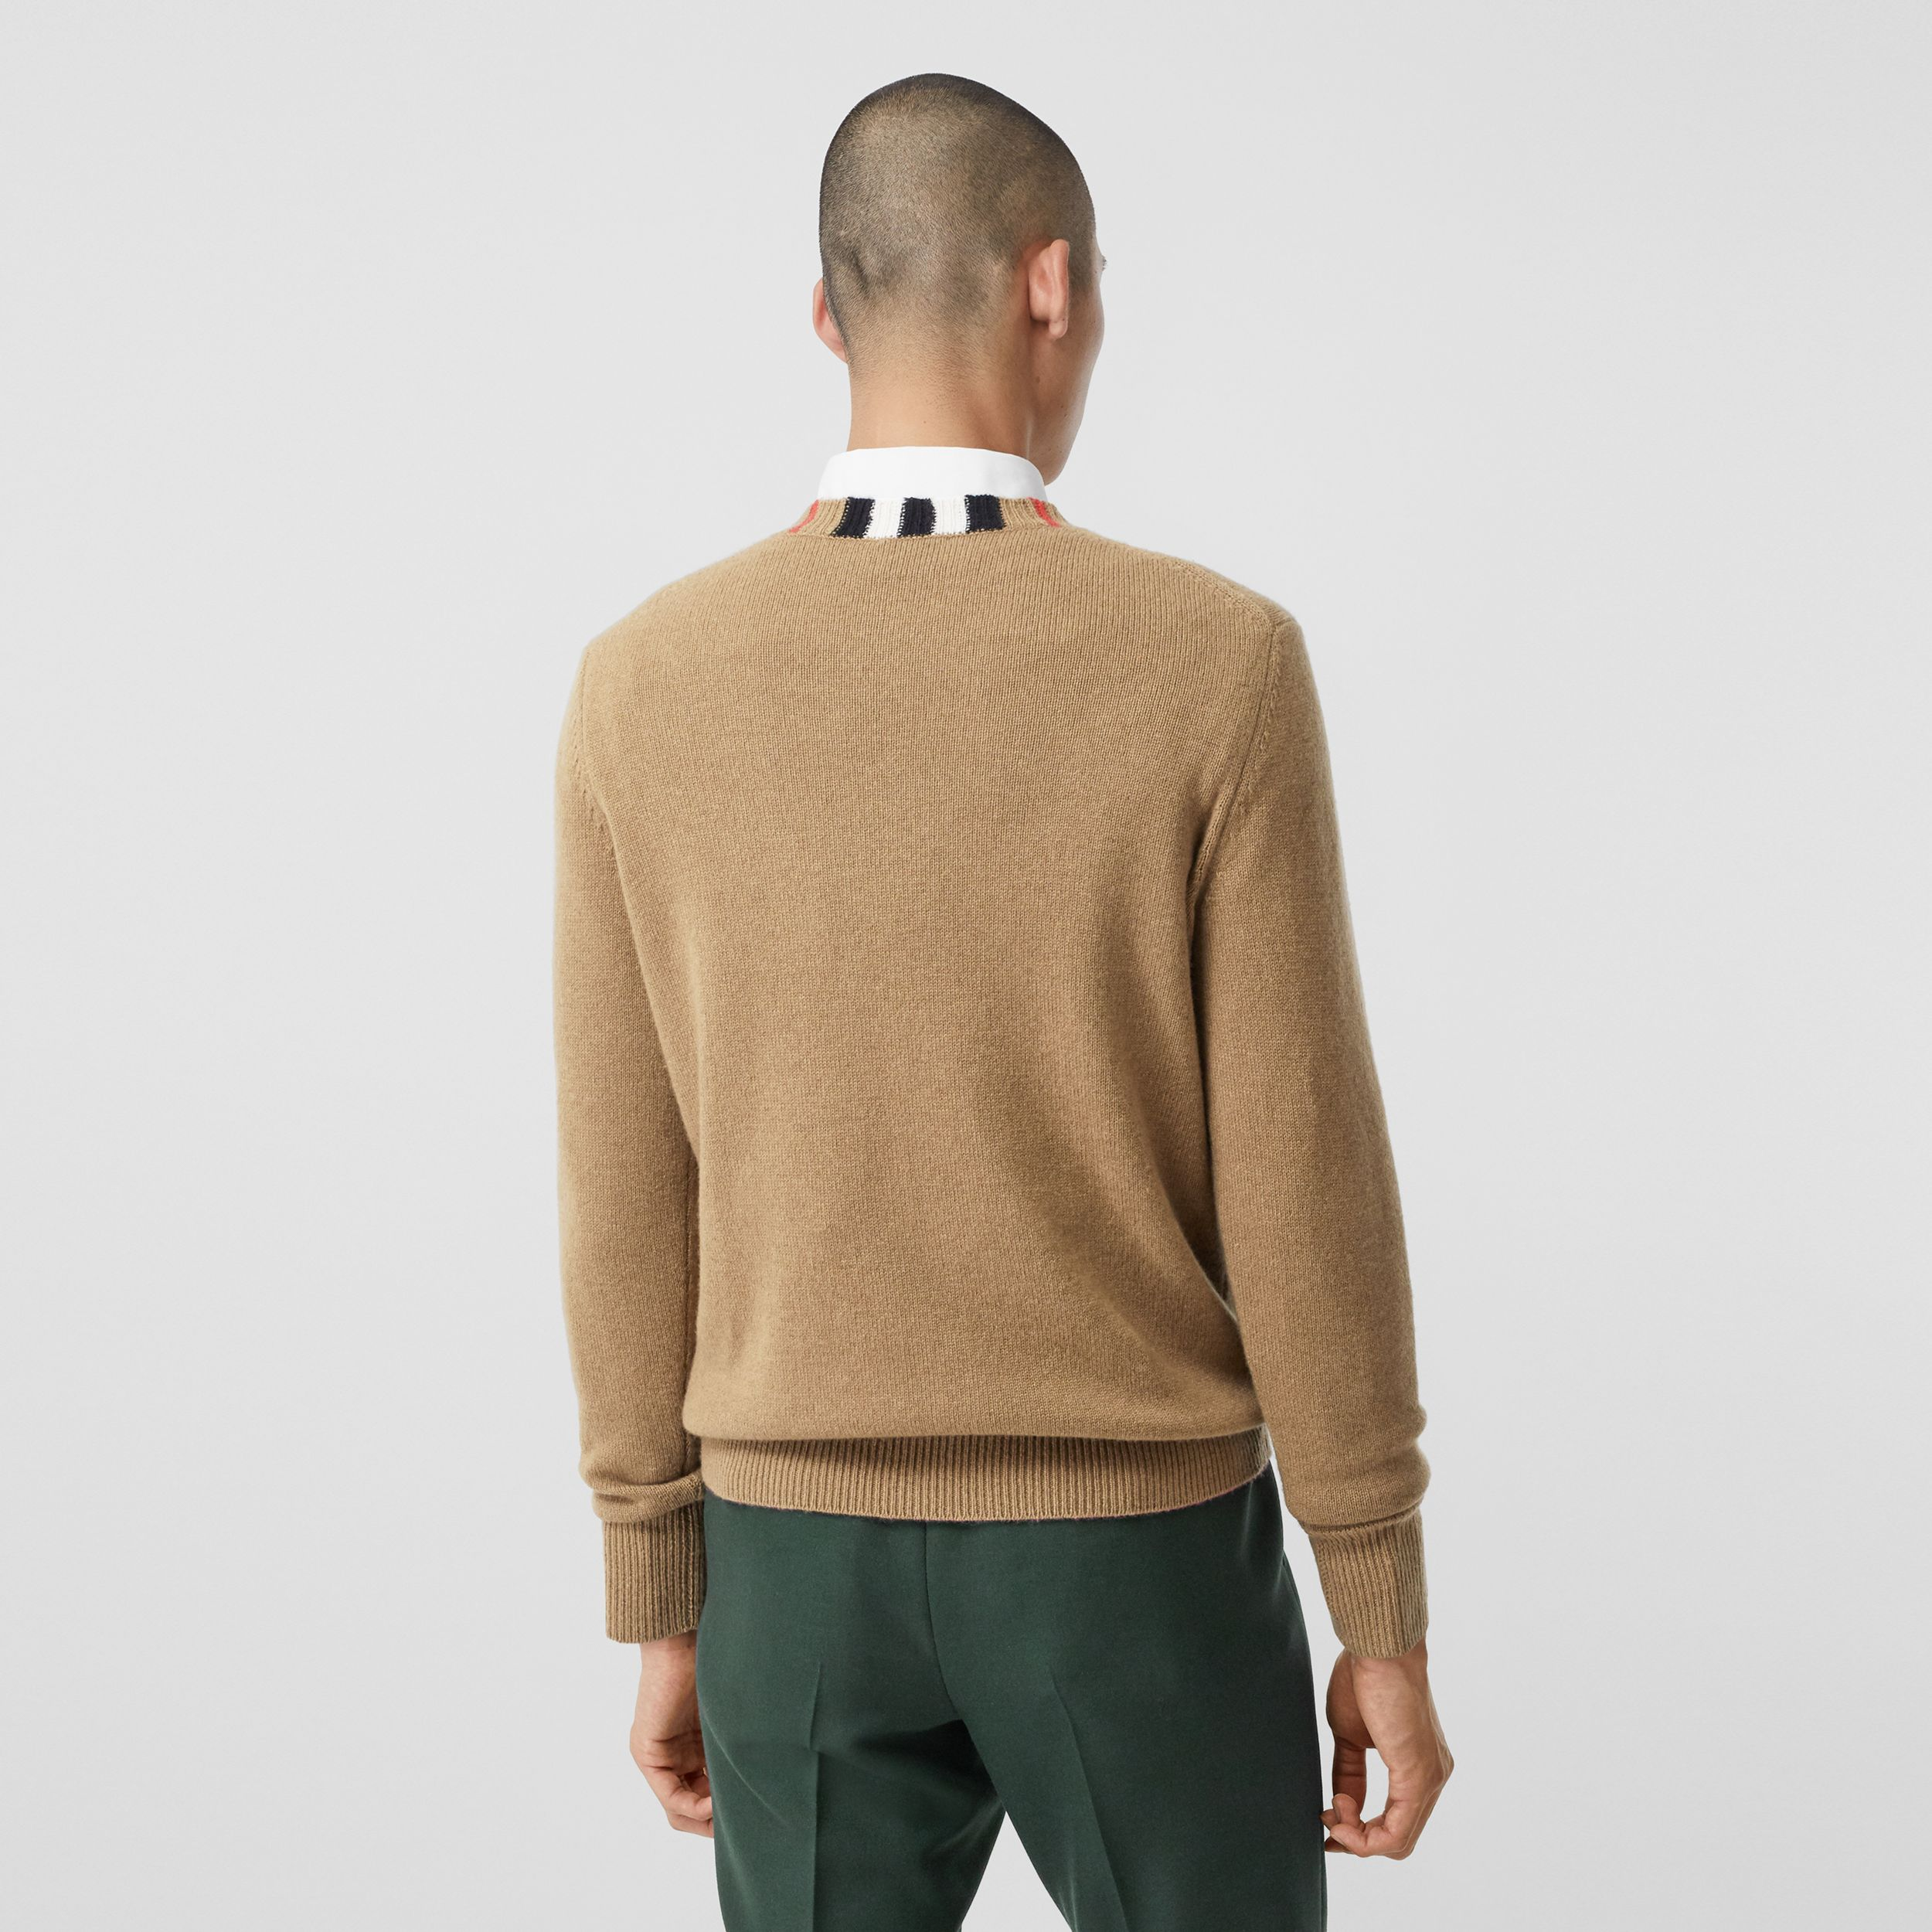 Icon Stripe Trim Cashmere Sweater in Camel - Men | Burberry Hong Kong S.A.R. - 3